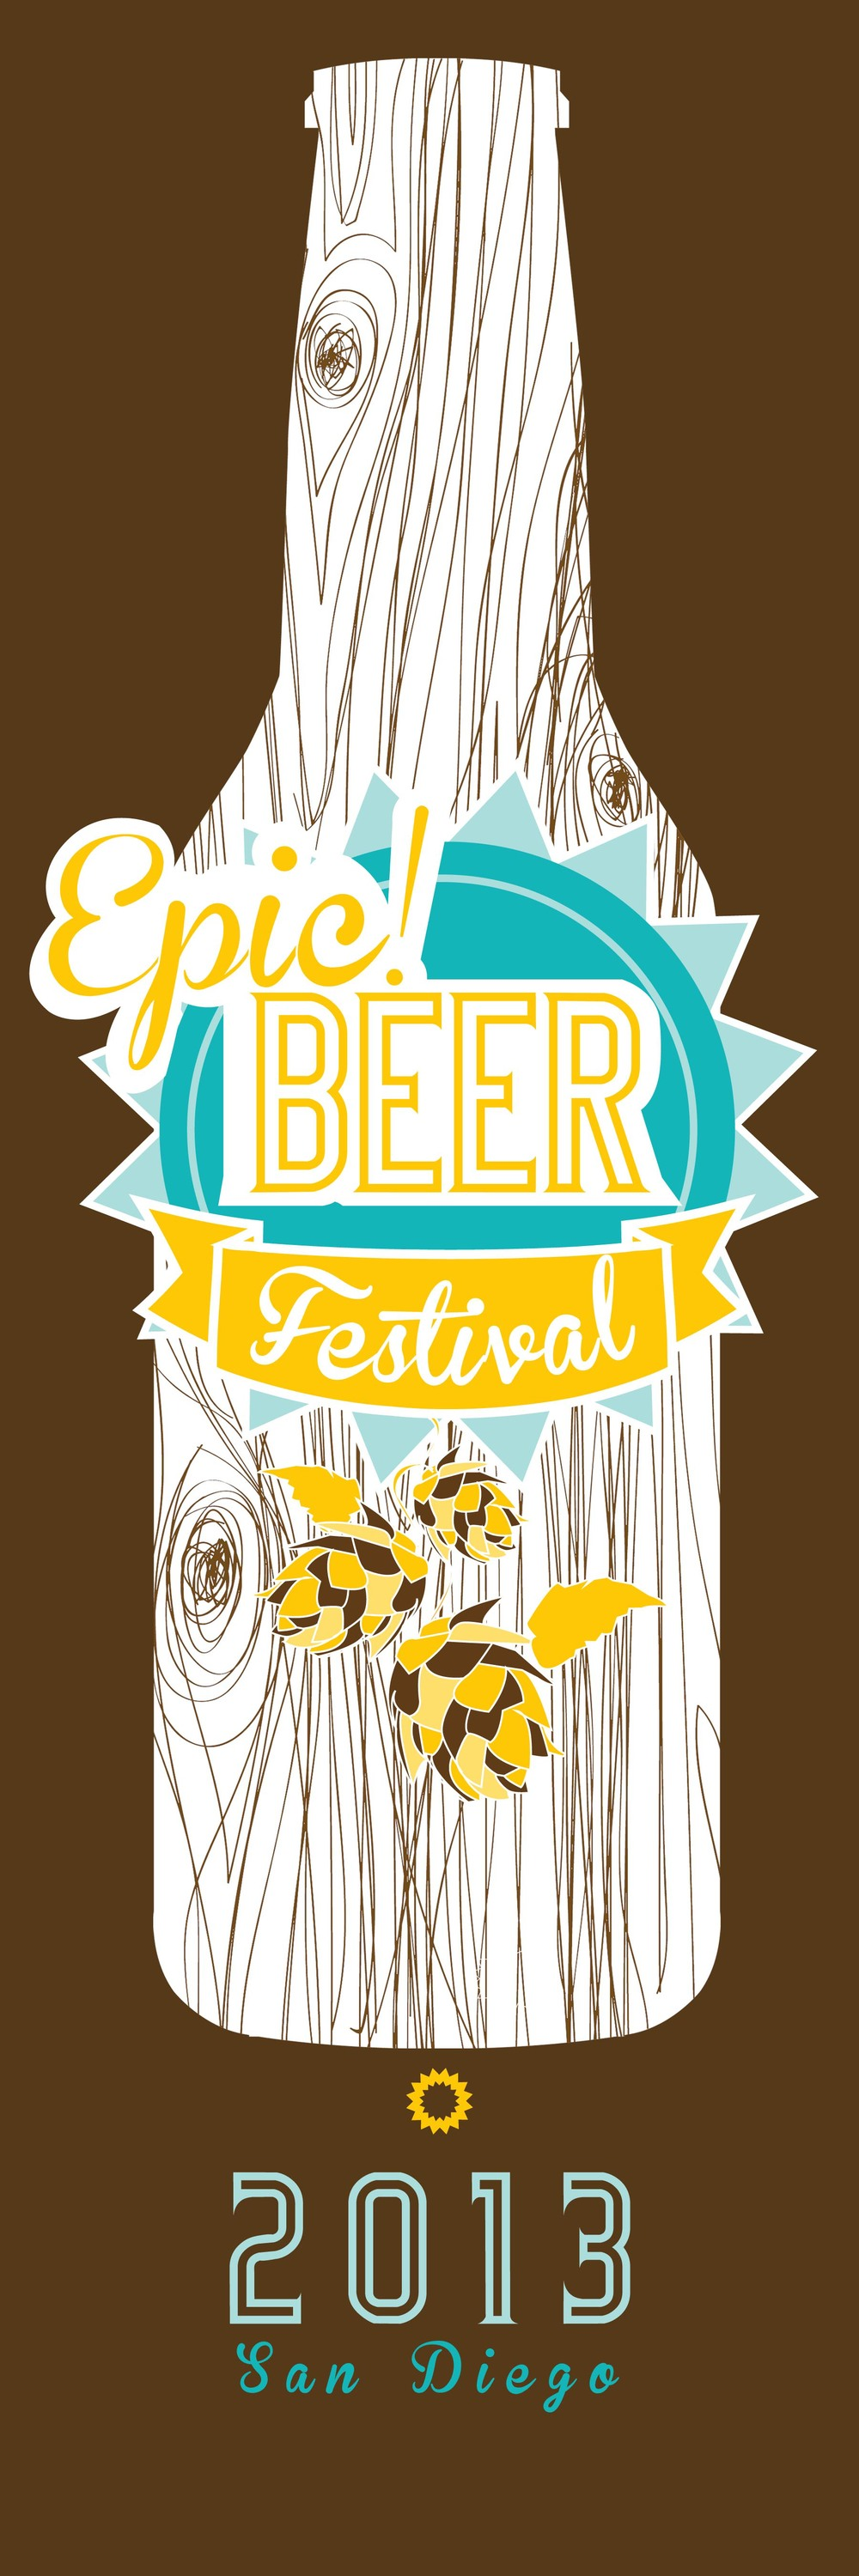 Event Branding Proposal--Beer Festival